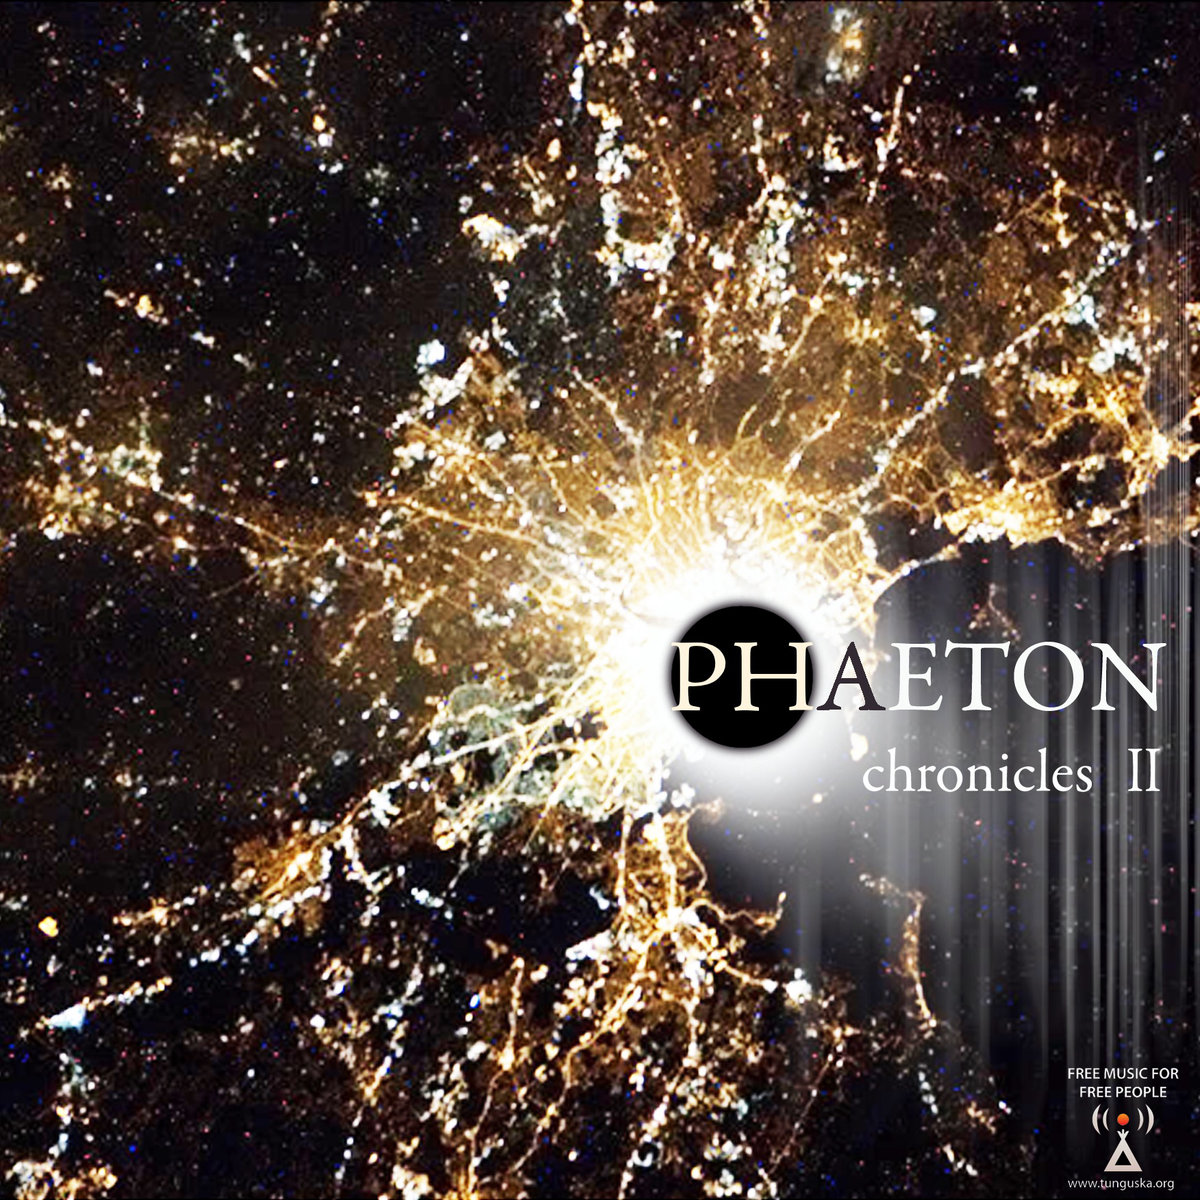 VadaDJ - Love Parad (DFRNT demo rework) @ 'Phaeton Chronicles - Volume 2' album (electronic, abstract electronic)